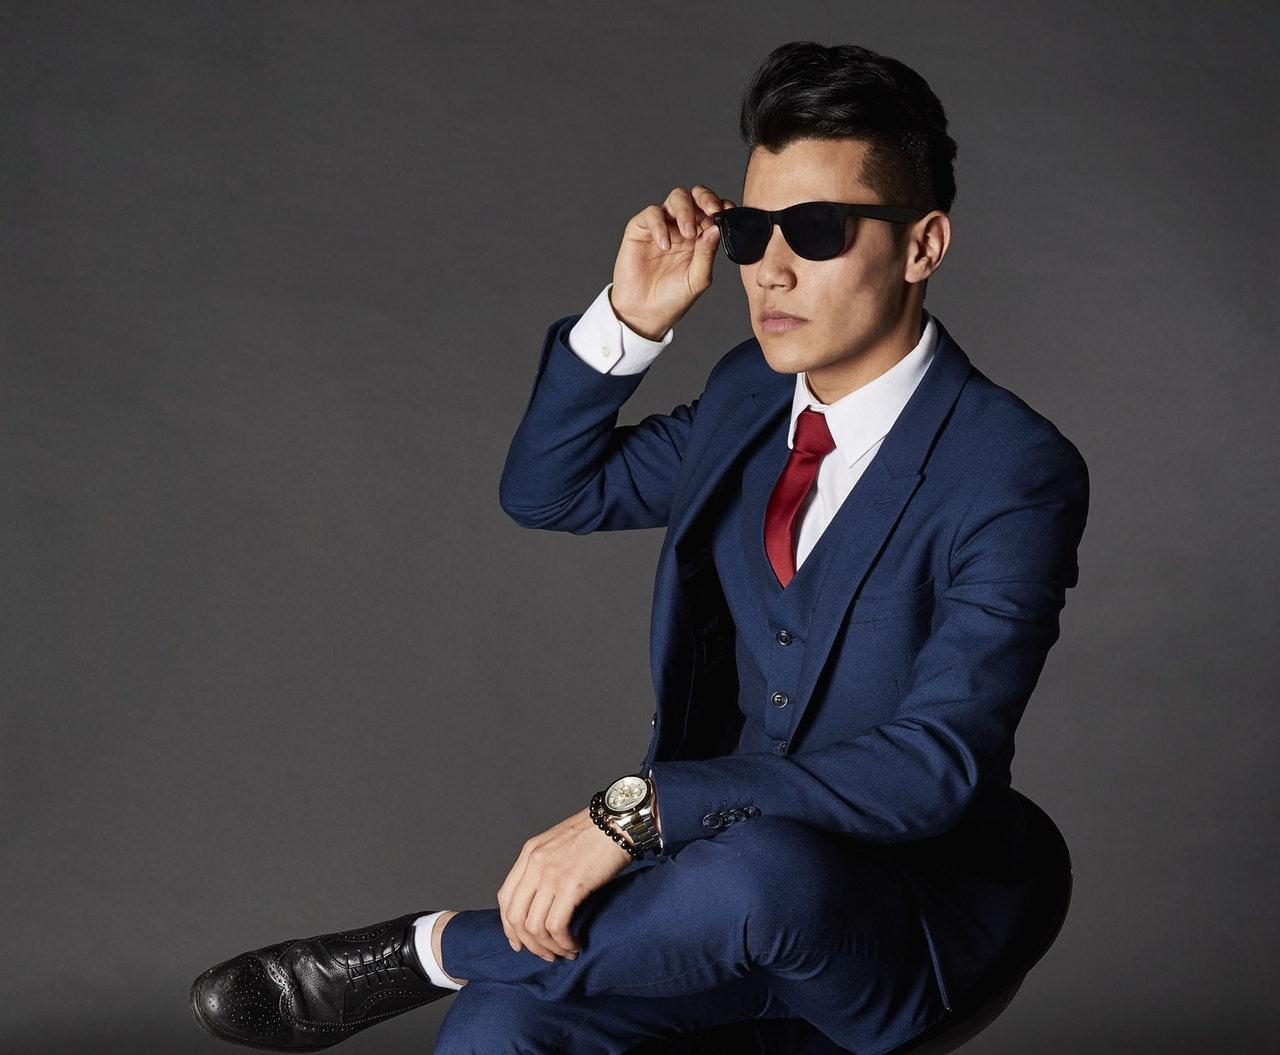 d278cd83779 Nothing too high or showy. We d stay away from any bright colors or wild  patterns on shirts or ties. Suits should be in the navy or grey realm.